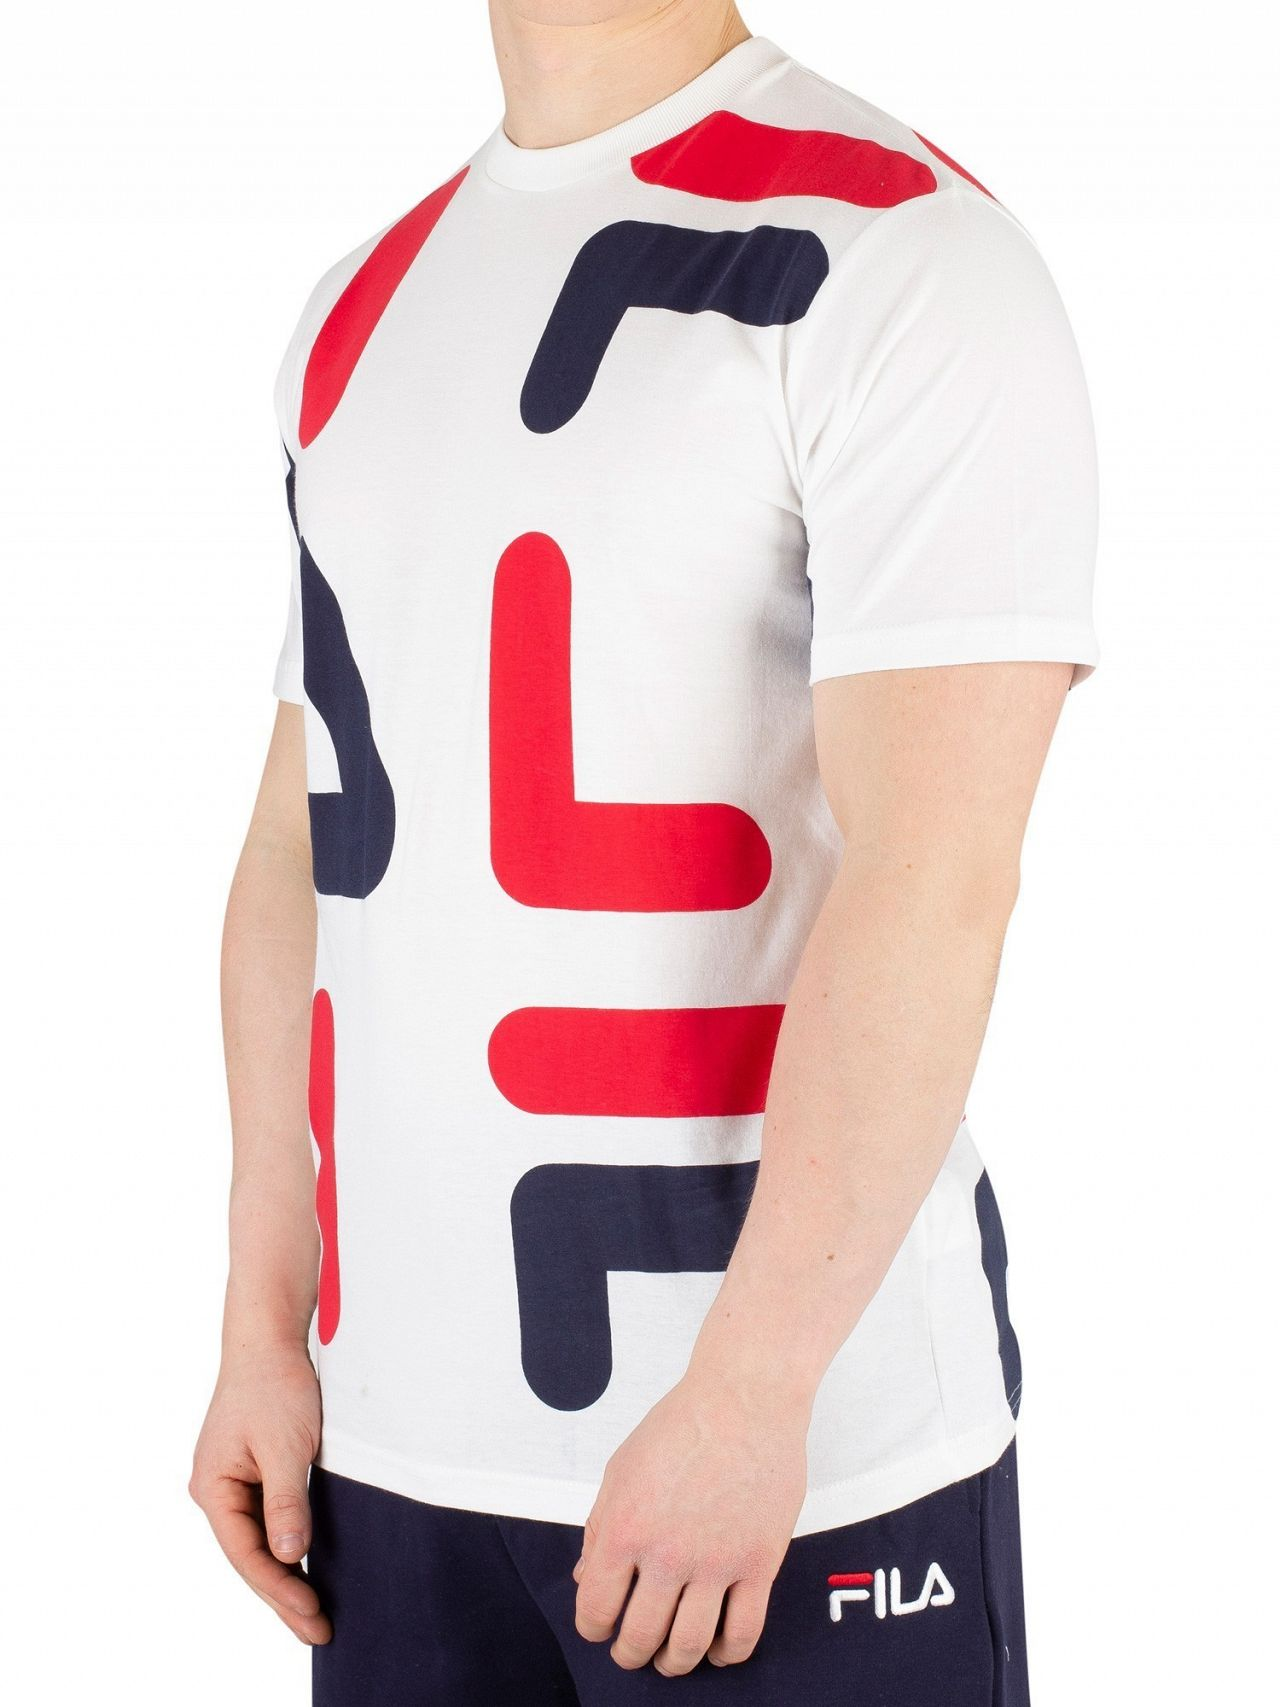 2d8c2ab7eb Fila White/Chinese Red/Peacoat Bennet AOP Print T-Shirt